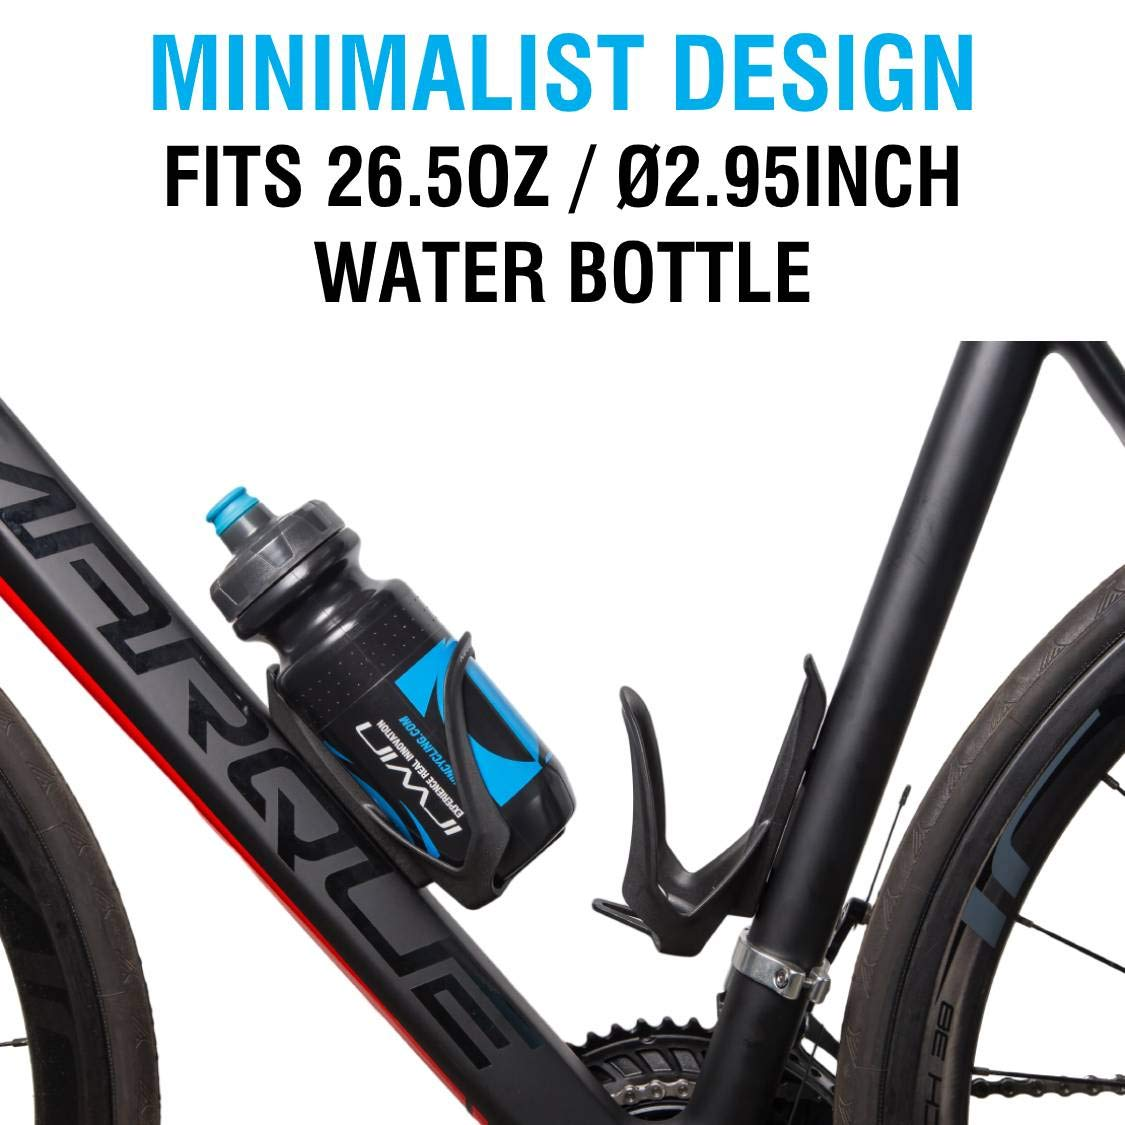 MARQUE Dual Bike Bottle Cage Black Bicycle Water Bottle Holder for Road Cyclin